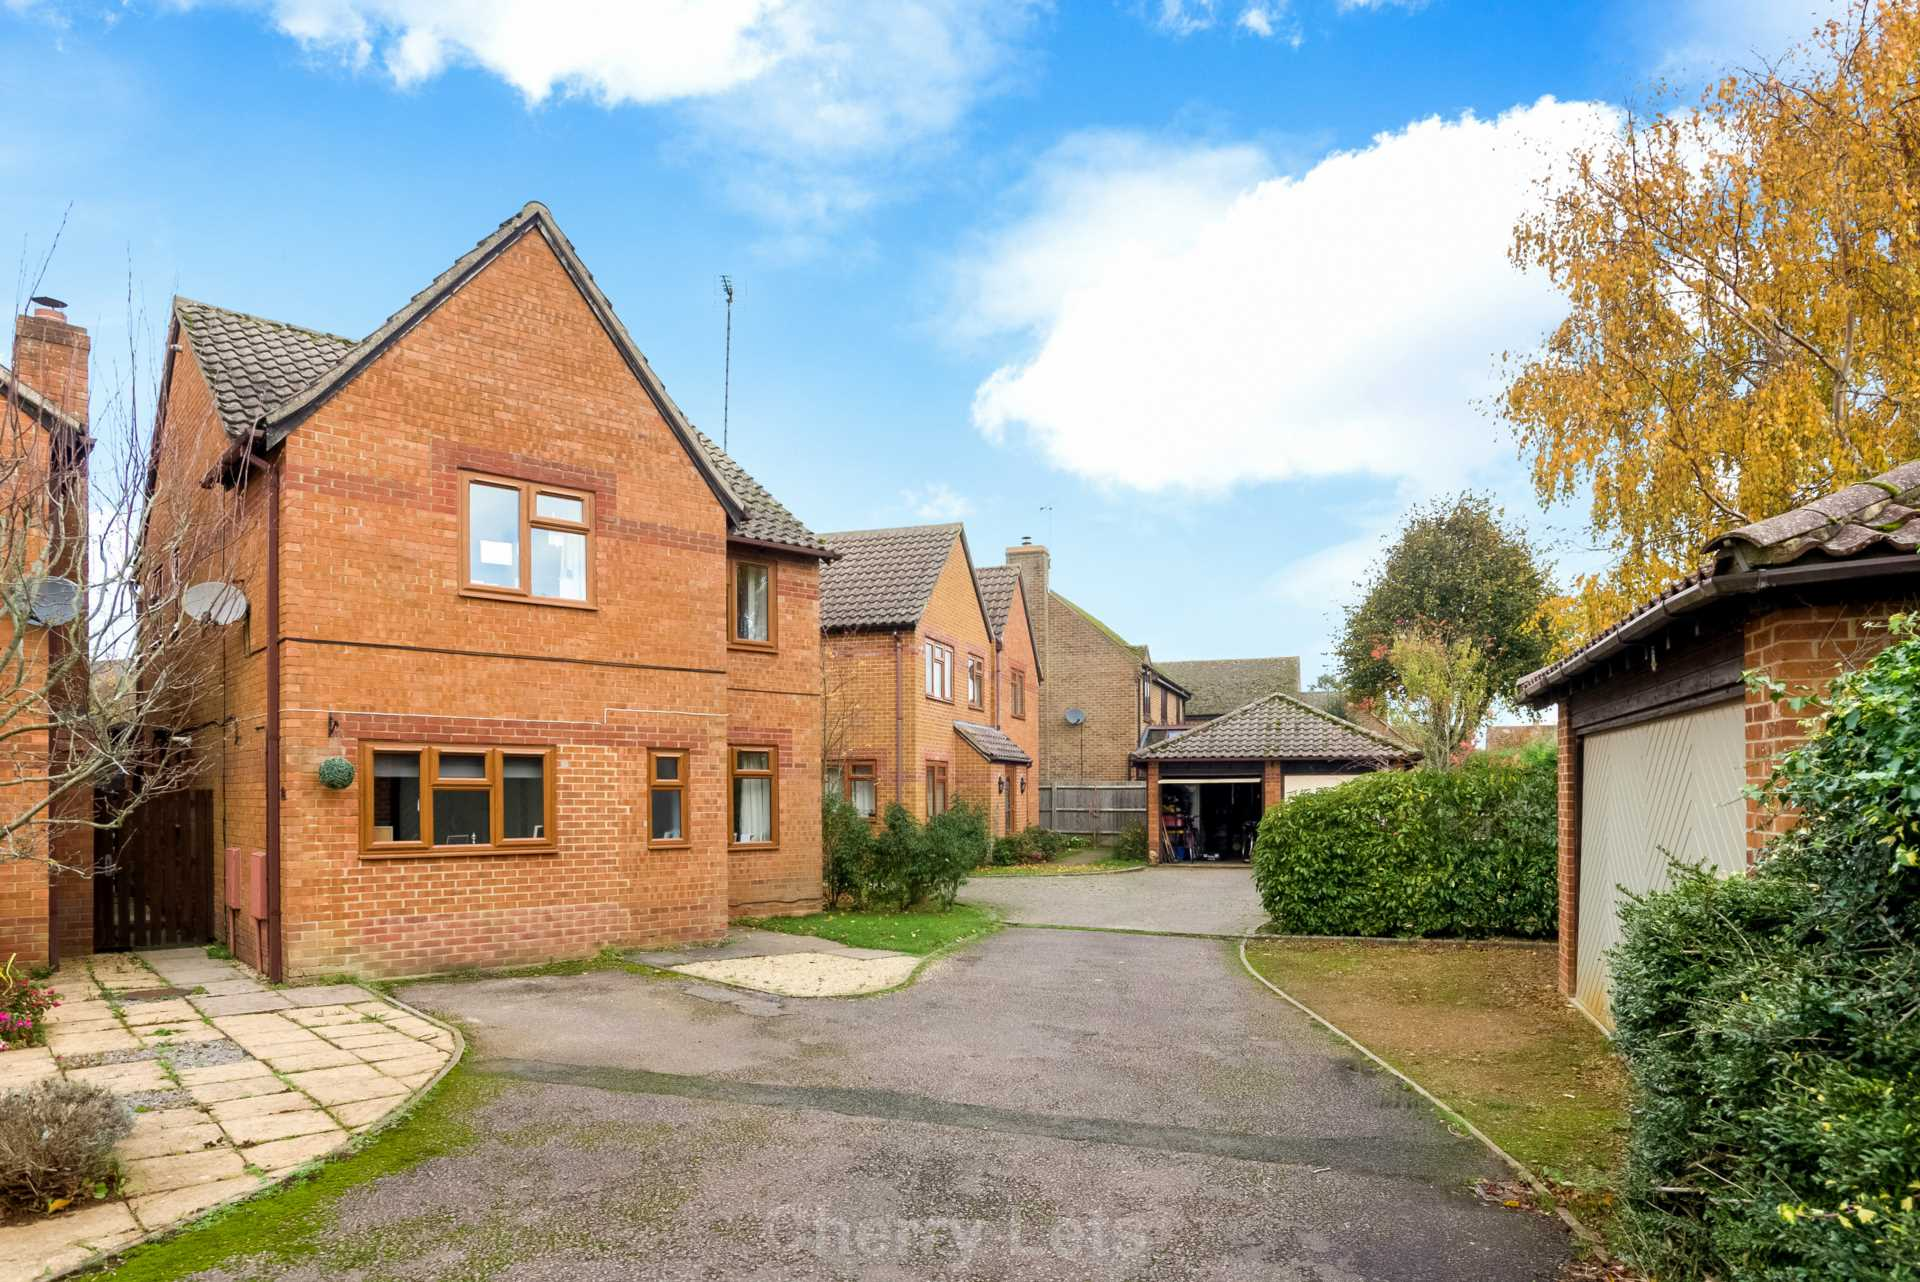 3 bed detached house to rent in Mill Close, Deddington, OX15 16